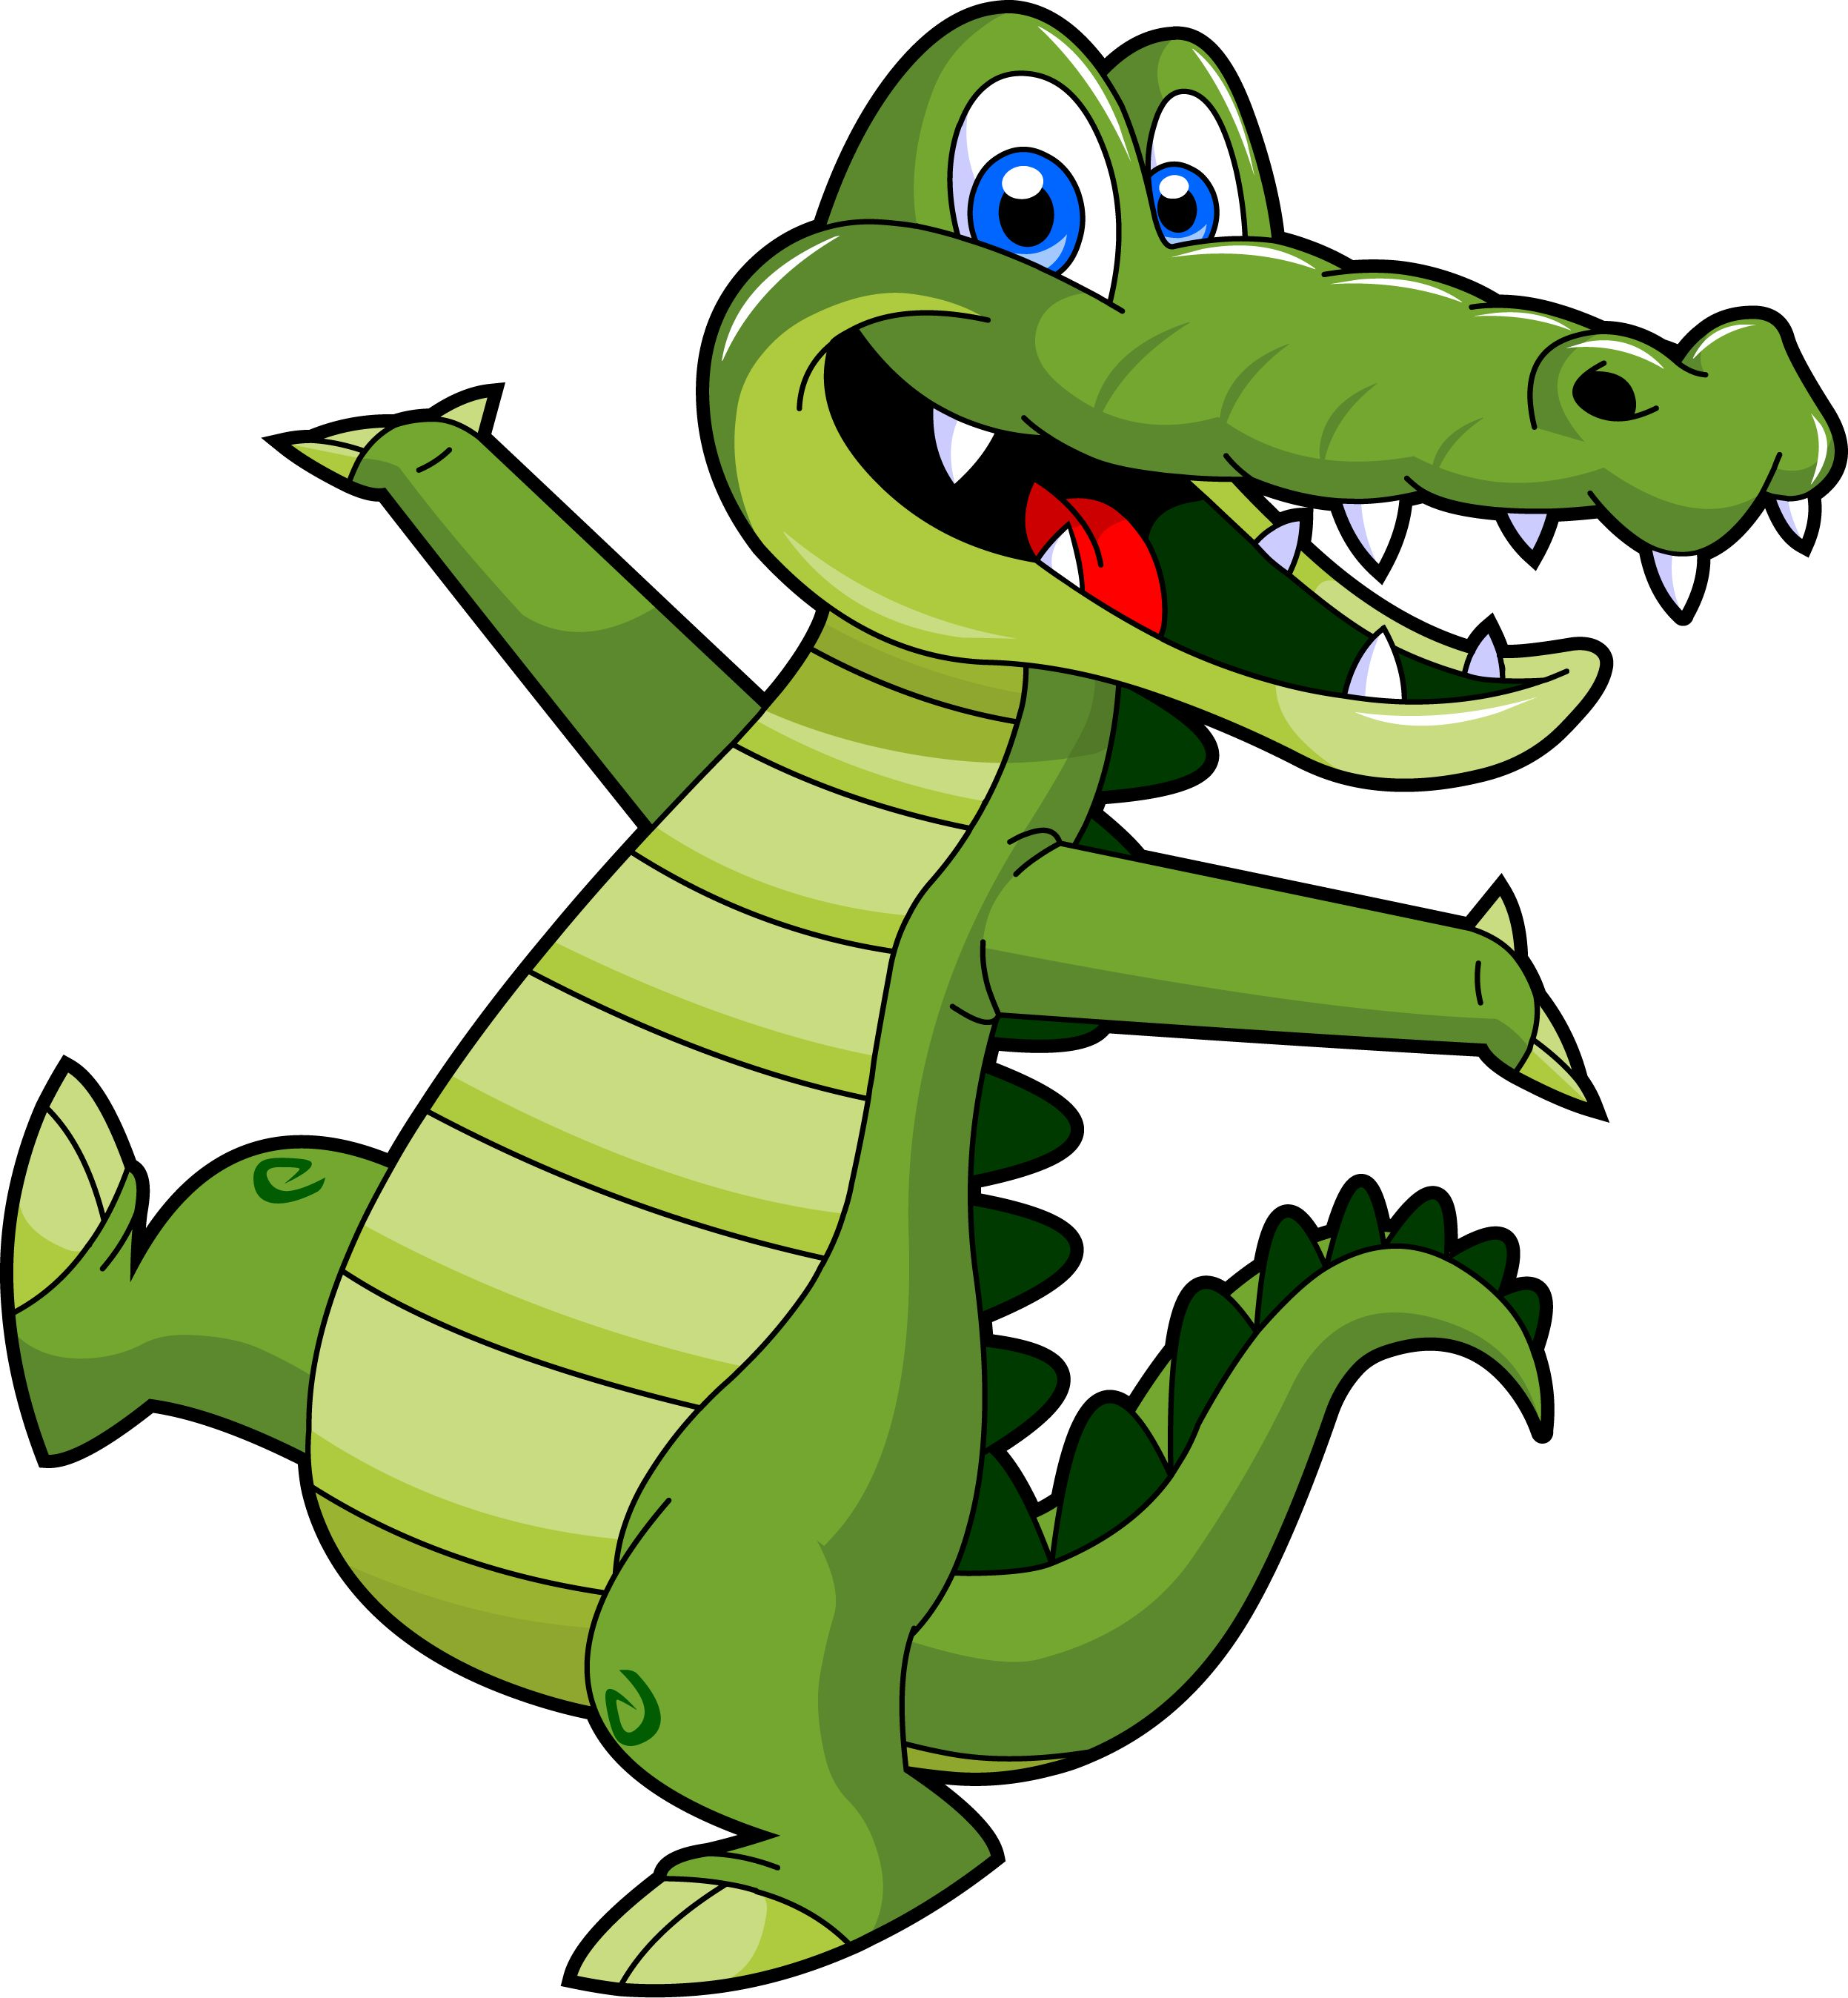 Crocodile clipart #10, Download drawings